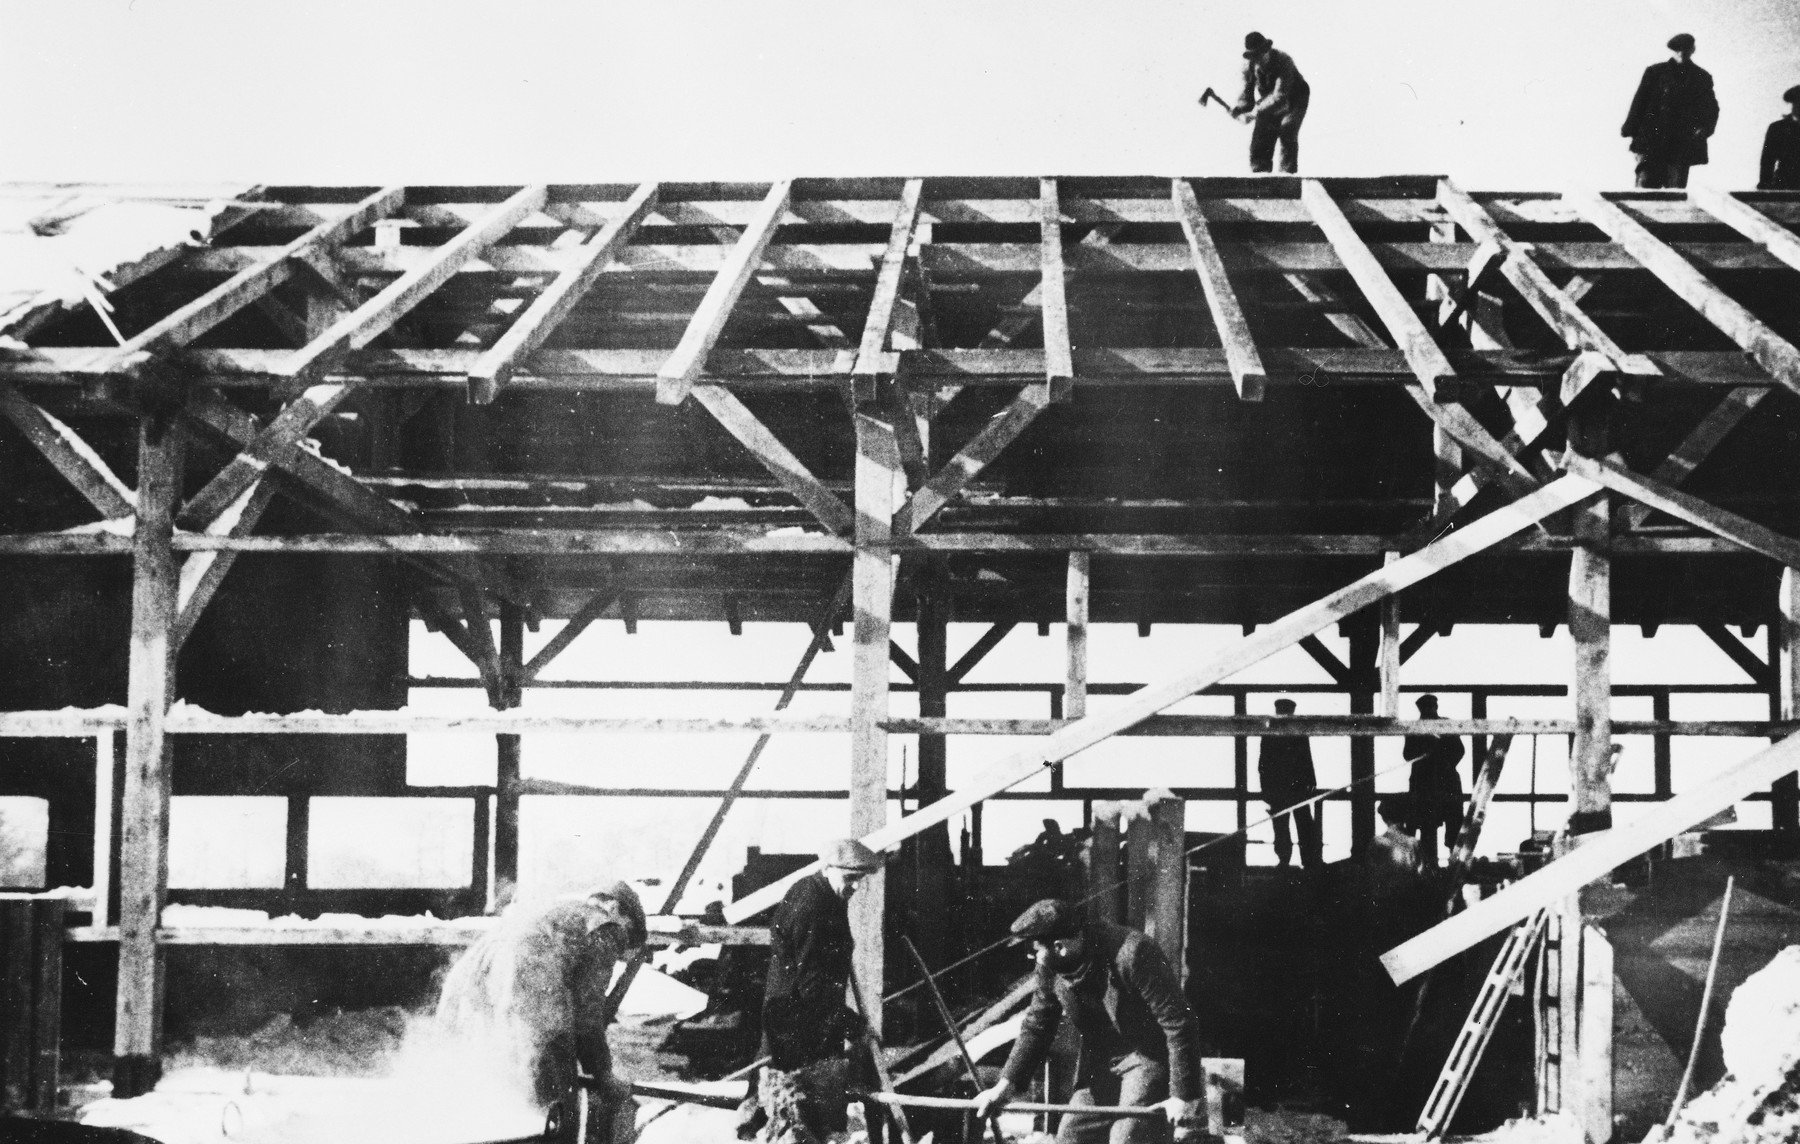 Prisoners construct barracks and other buildings at a Slovak labor camp.